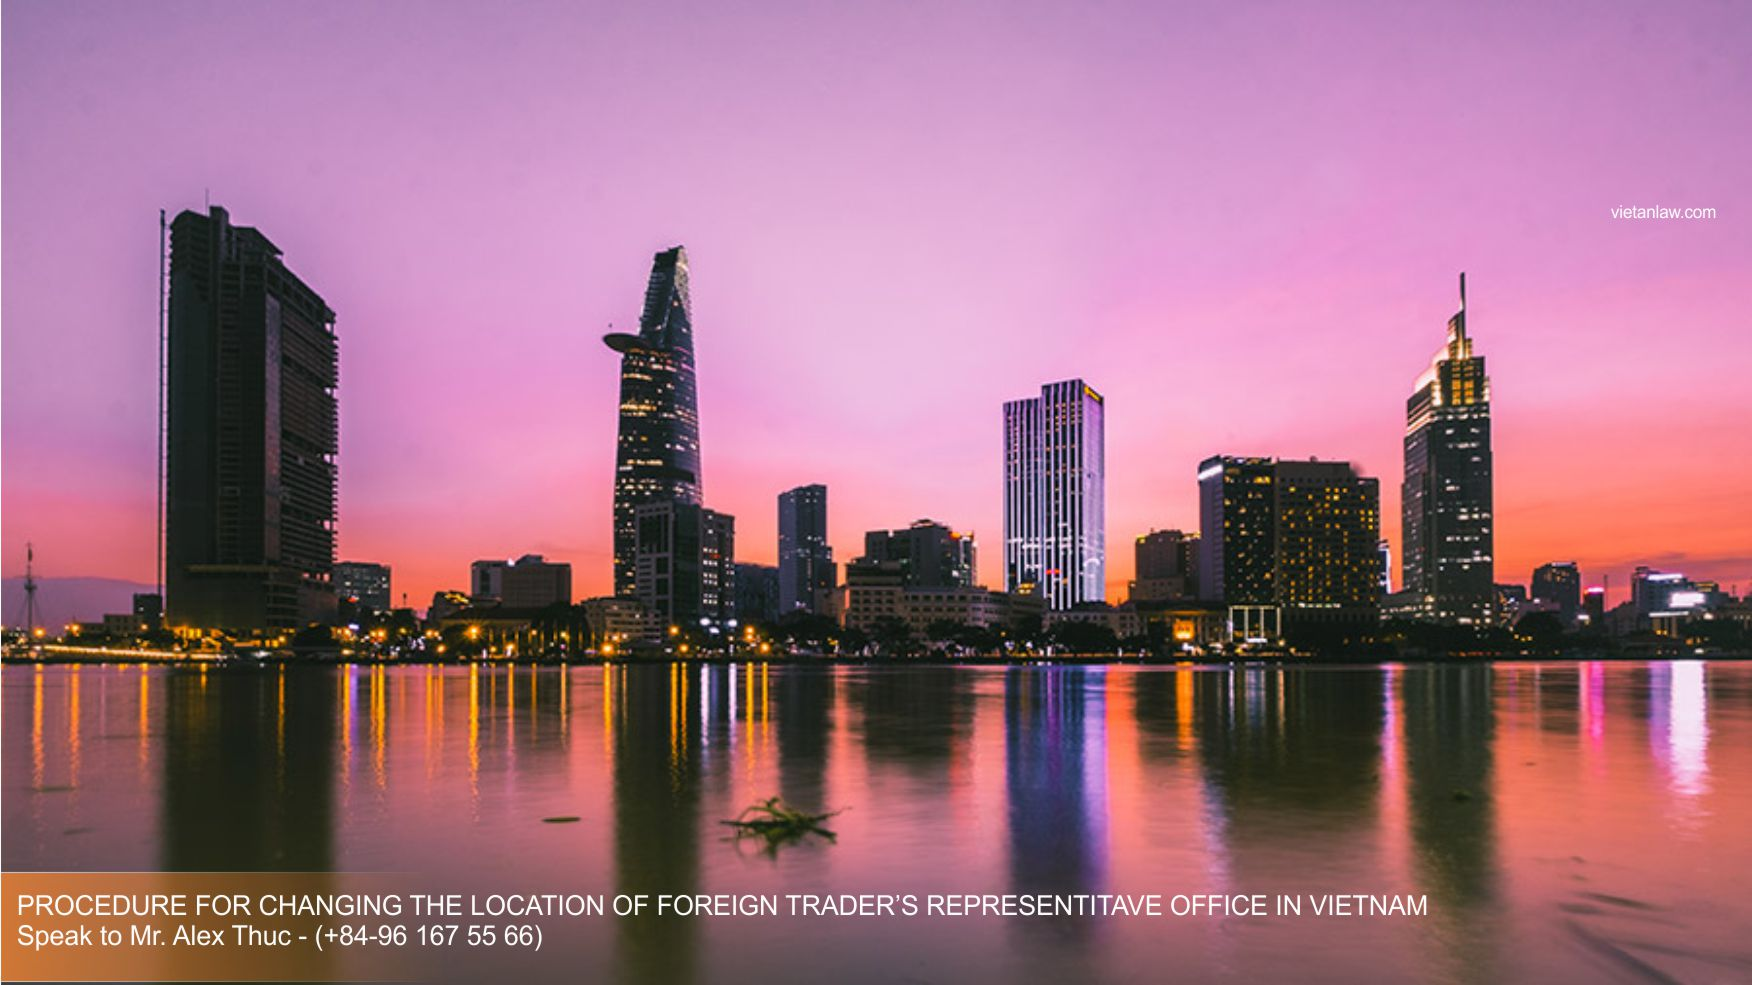 Procedure for changing the location of foreign trader's representitave office in Vietnam